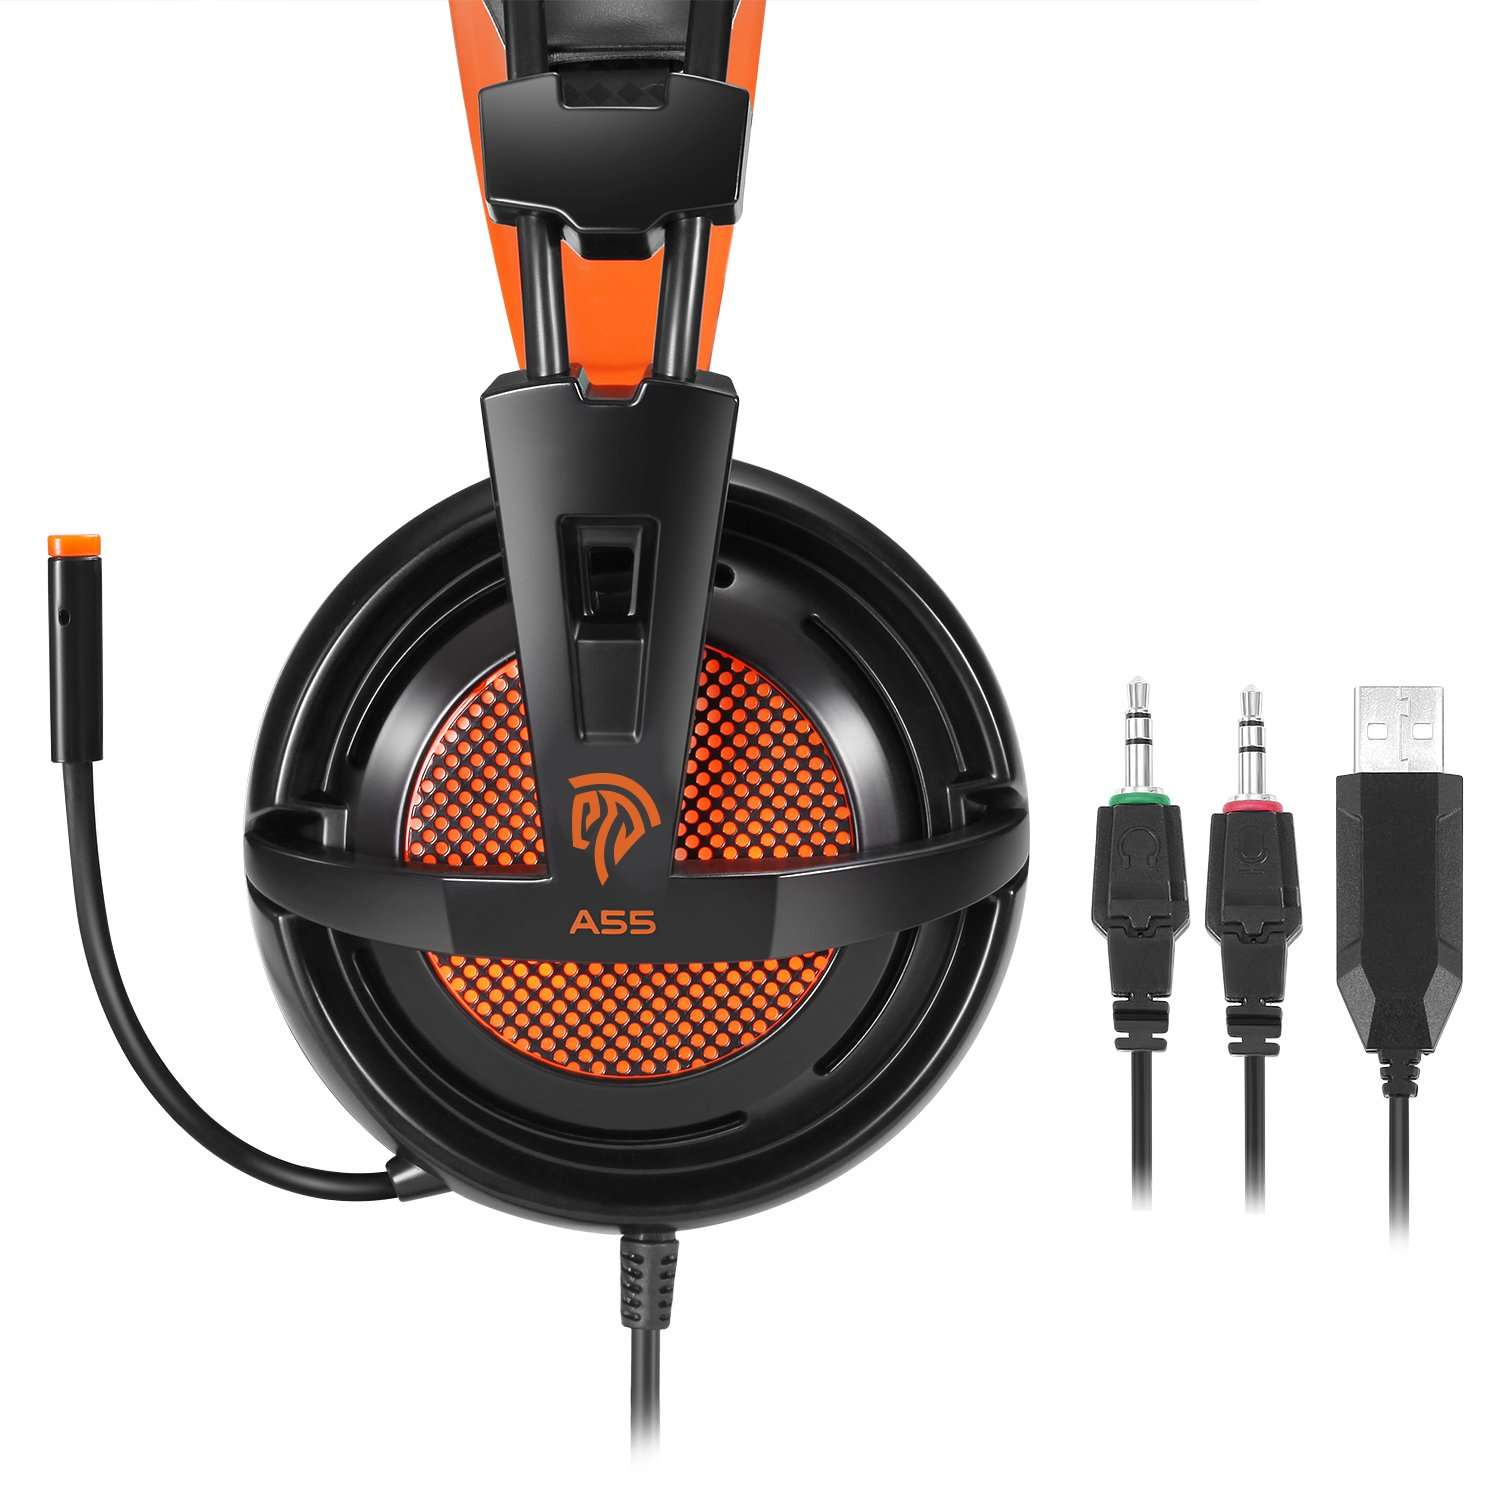 PC Gaming Headset, EasySMX Over-ear Wired Stereo Lightweight Gaming Headset 3.5mm Jack LED Indicator Adjustable Mic and In-line Controller One-key Mute for PC Tablet MP3 MP4 SONY and iPhone 6/7 etc.